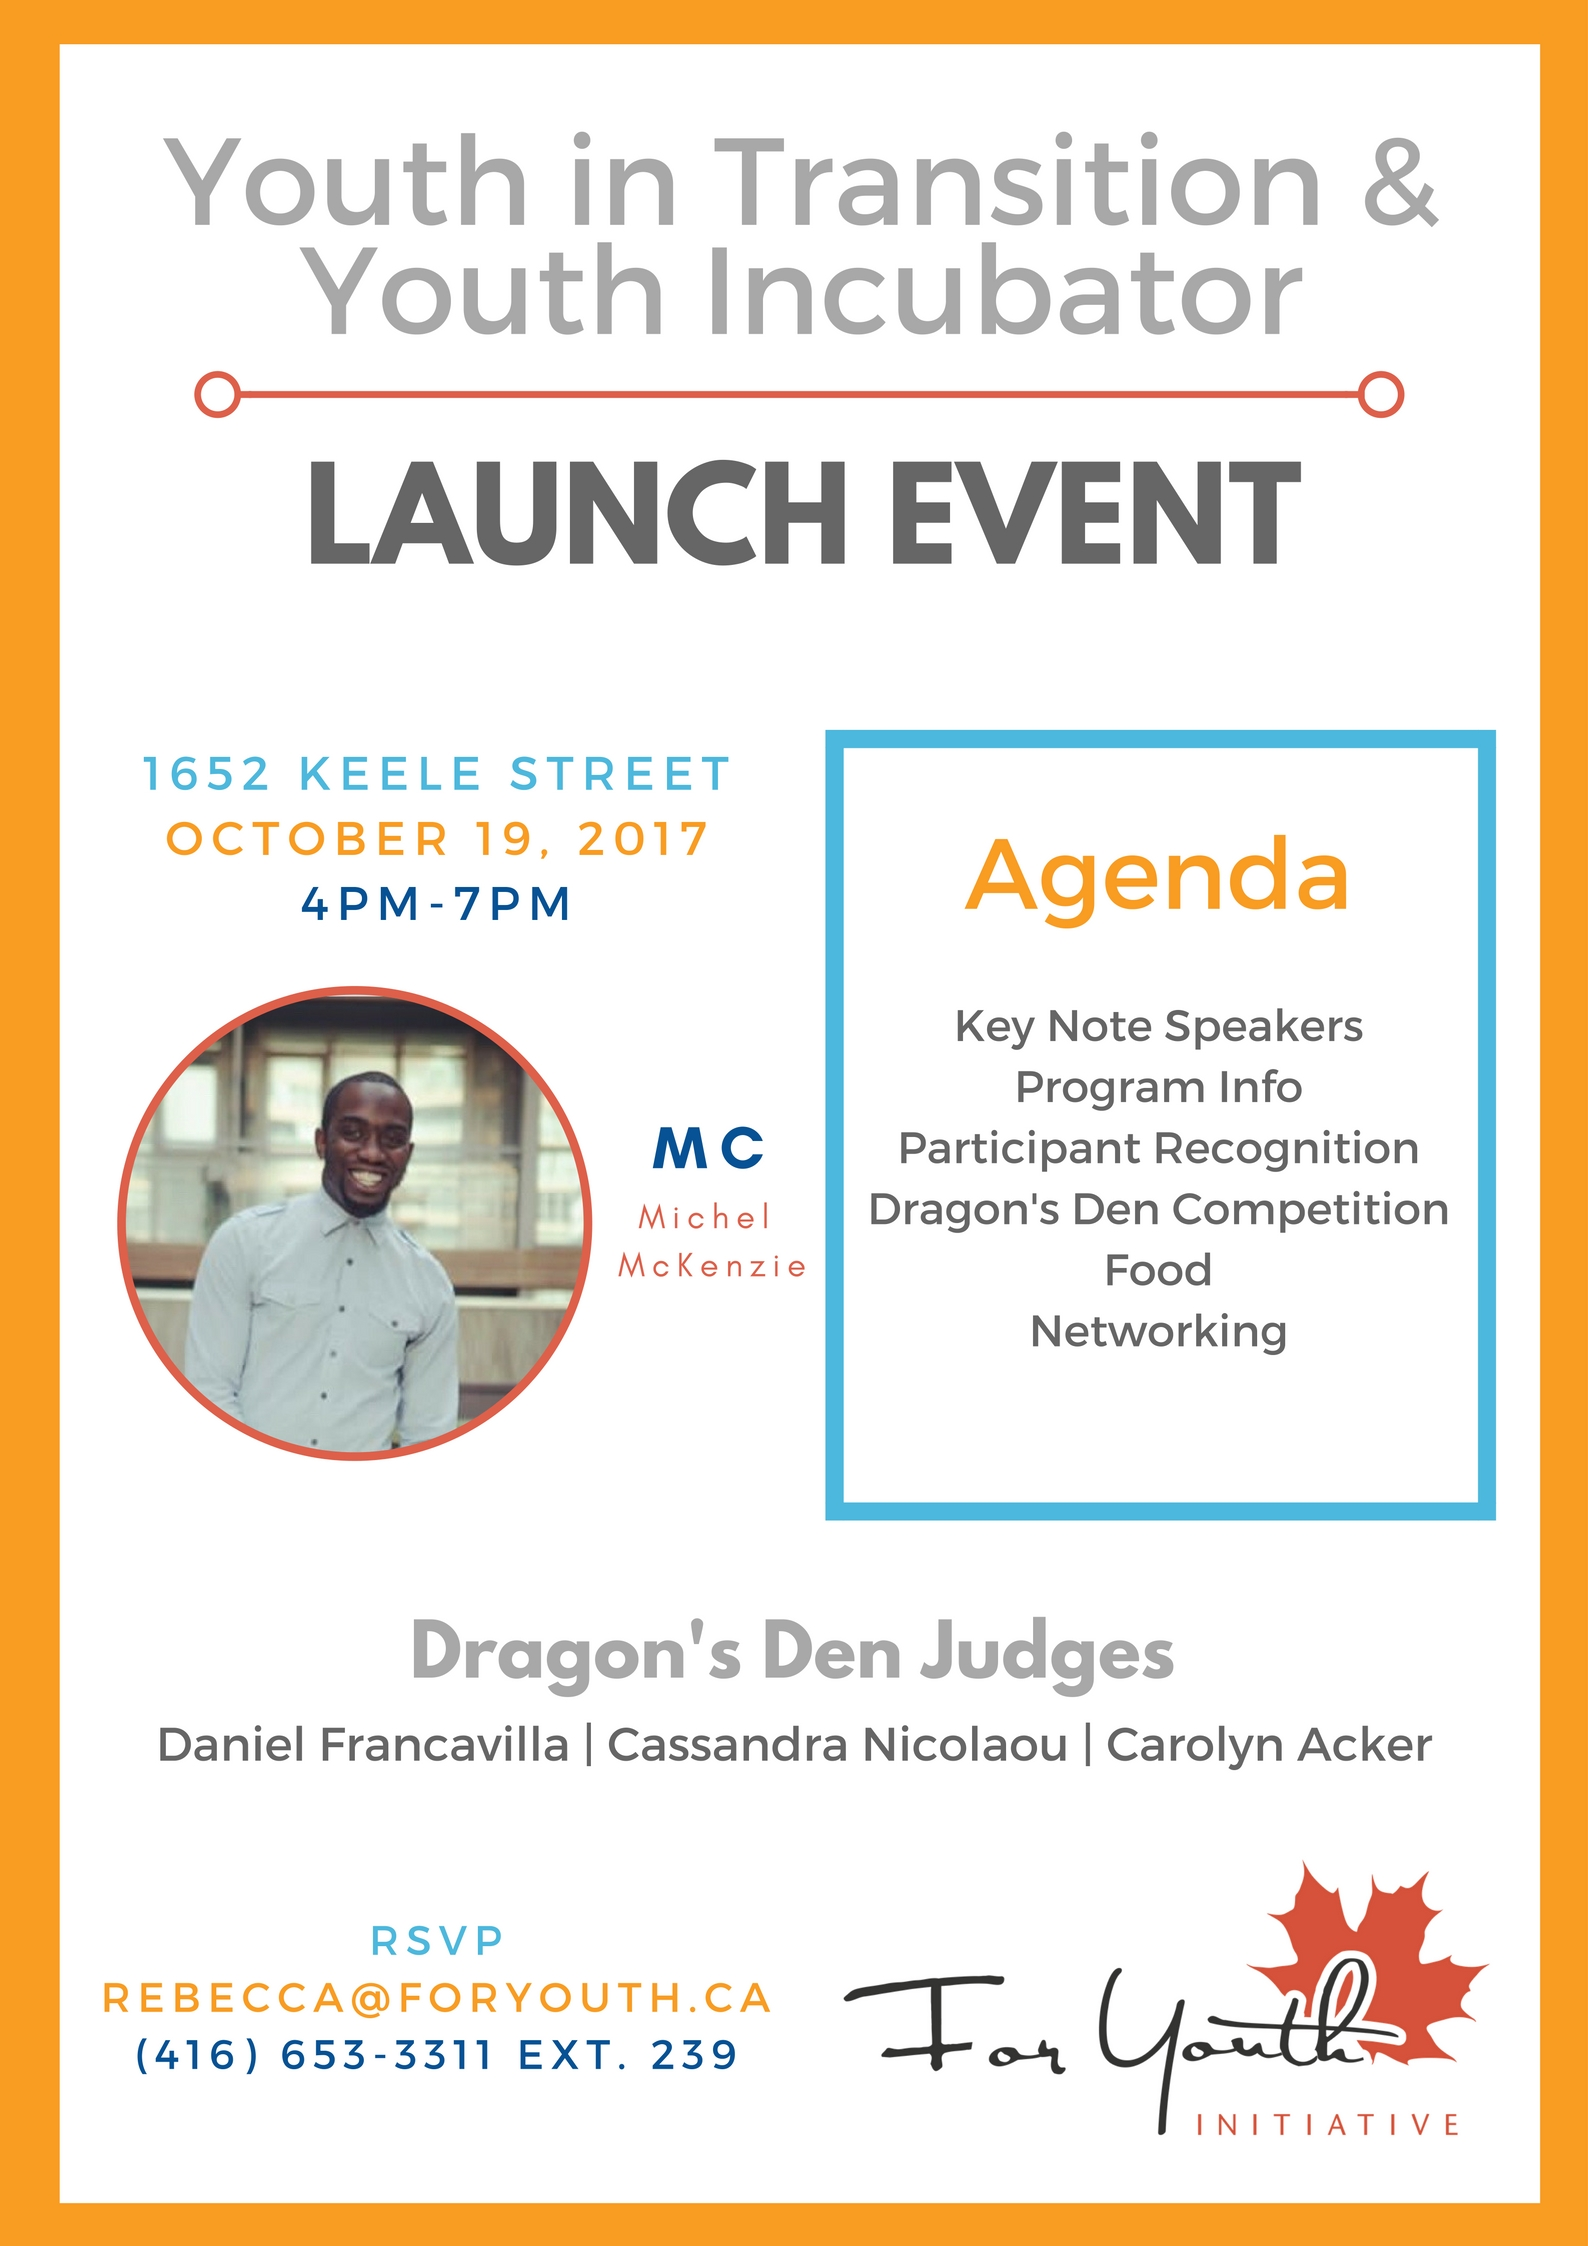 YiT___YI_Launch_Event_Poster.jpg